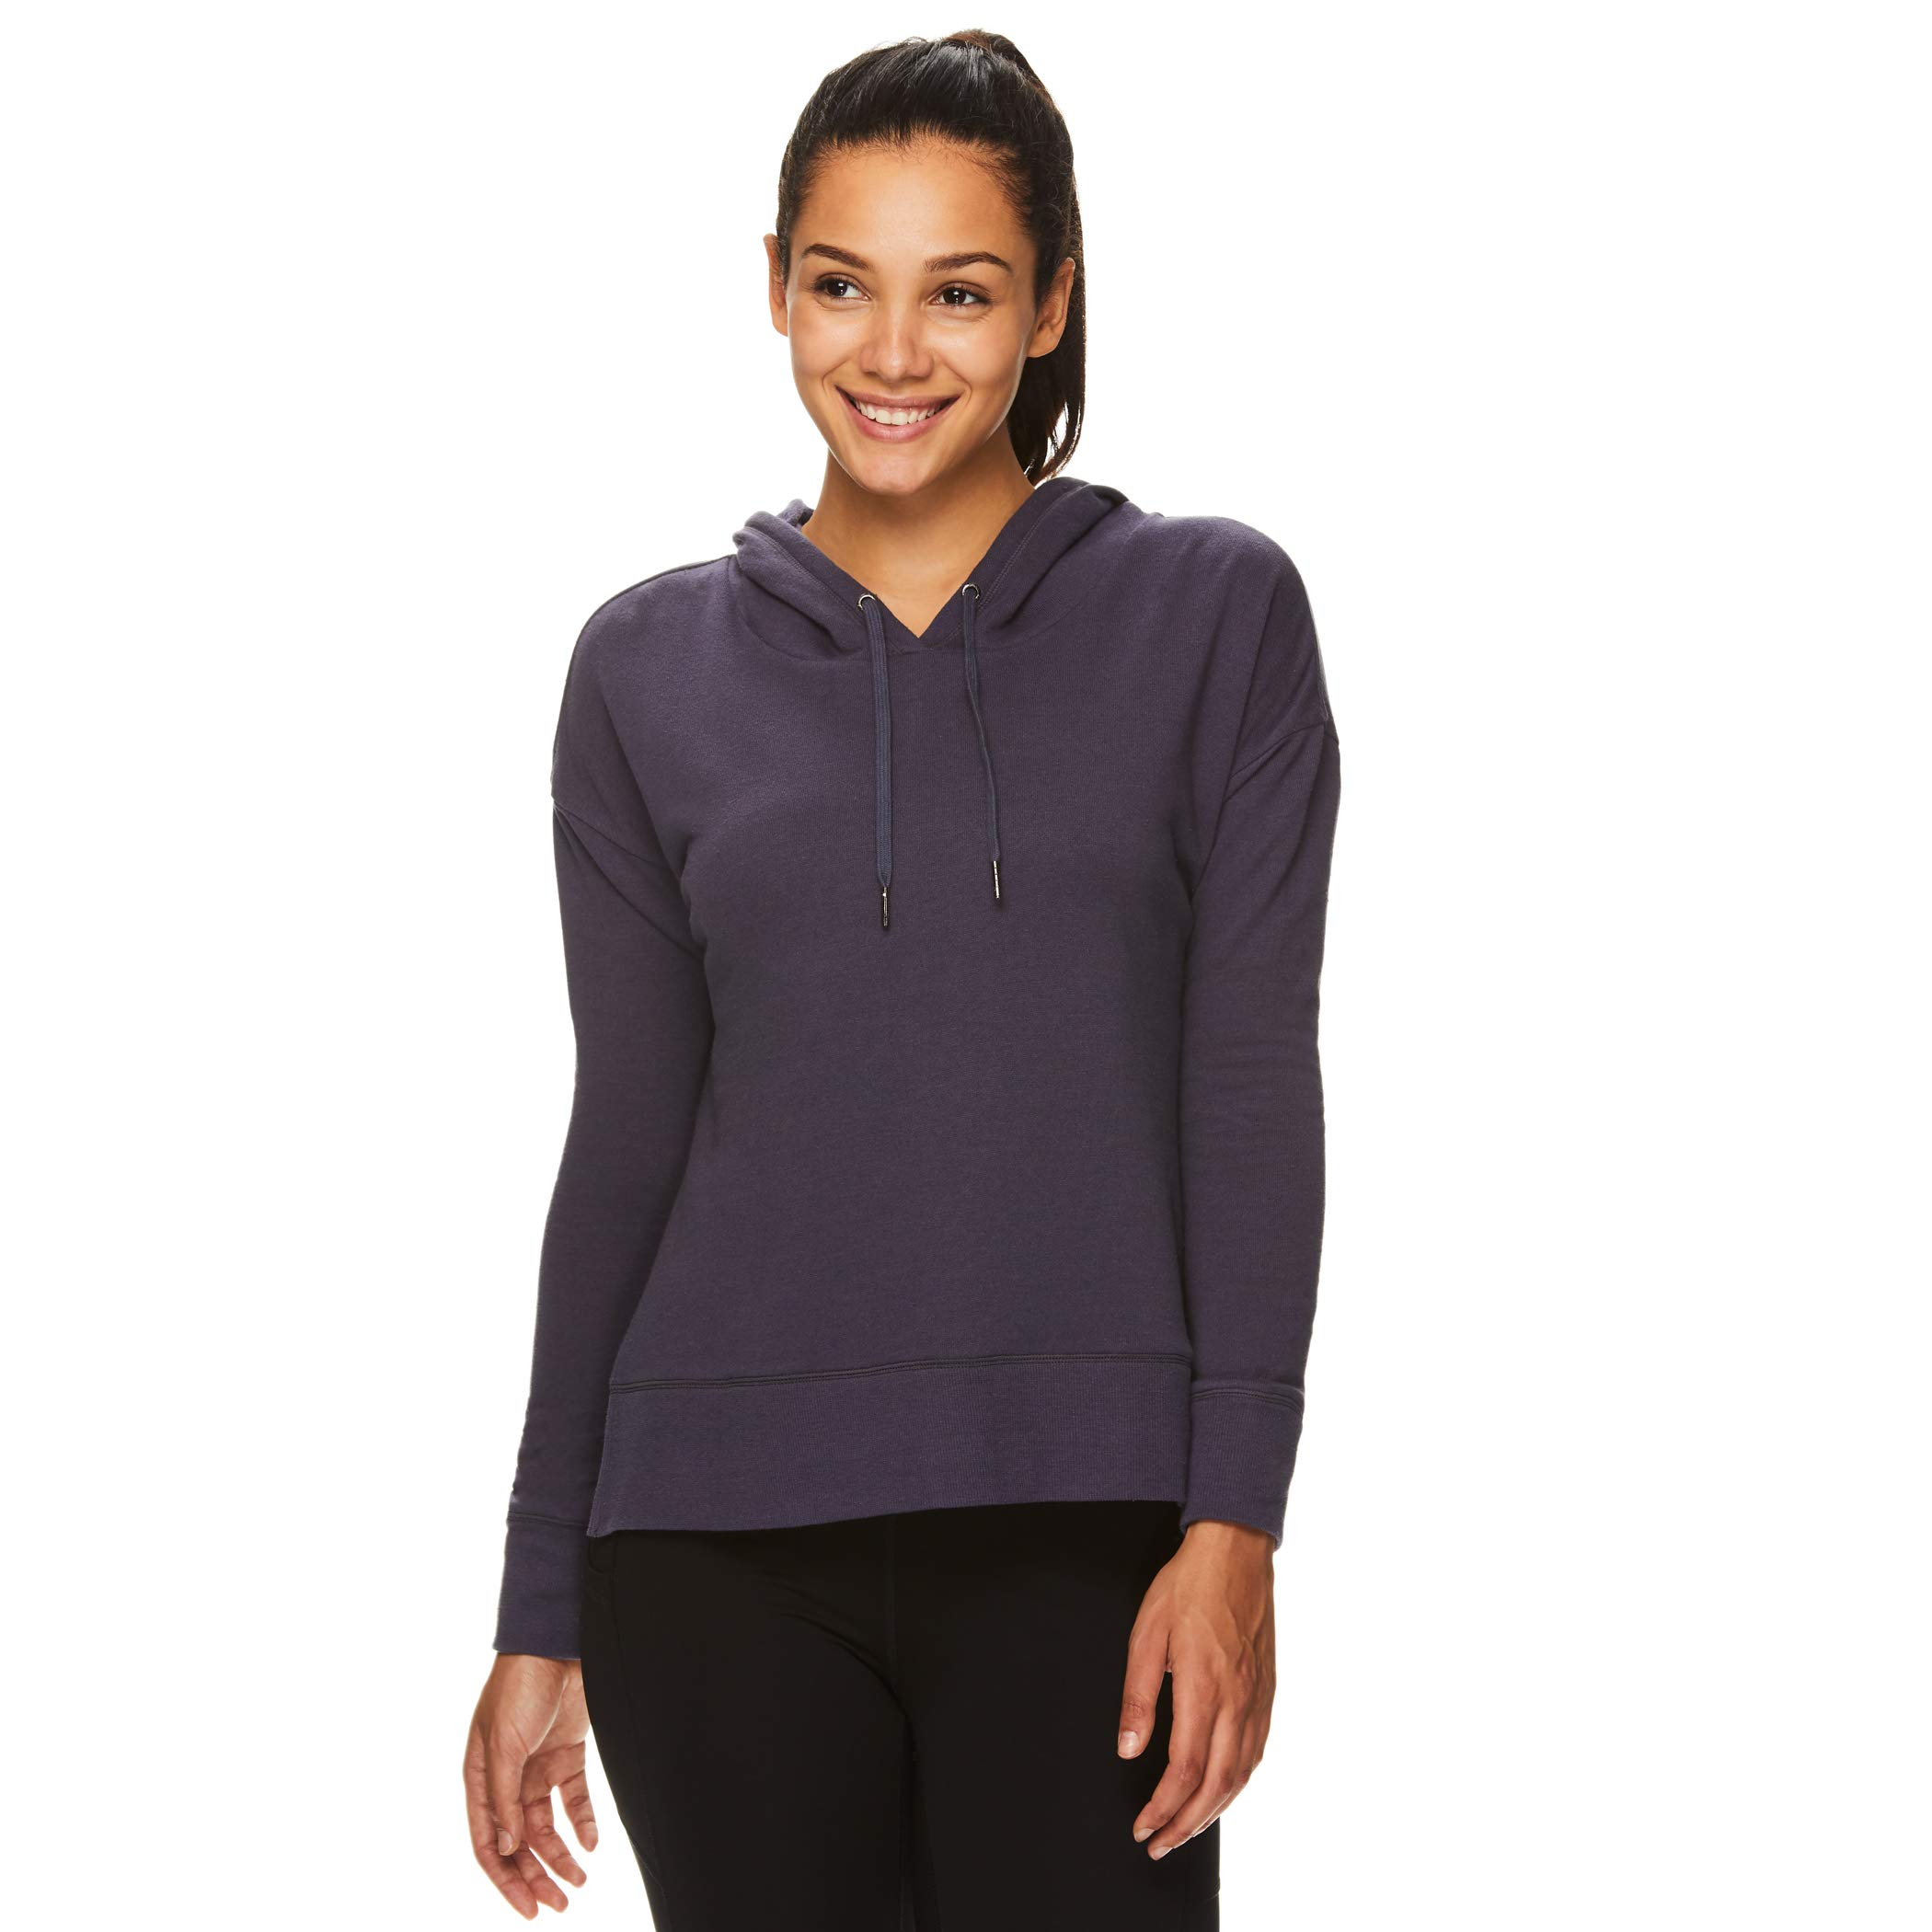 Gaiam Women's Pullover Hoodie Yoga Sweatshirt with Side Slits - Lightweight Cropped Athleisure Sweater - Harlow Graphite, X-Large by Gaiam